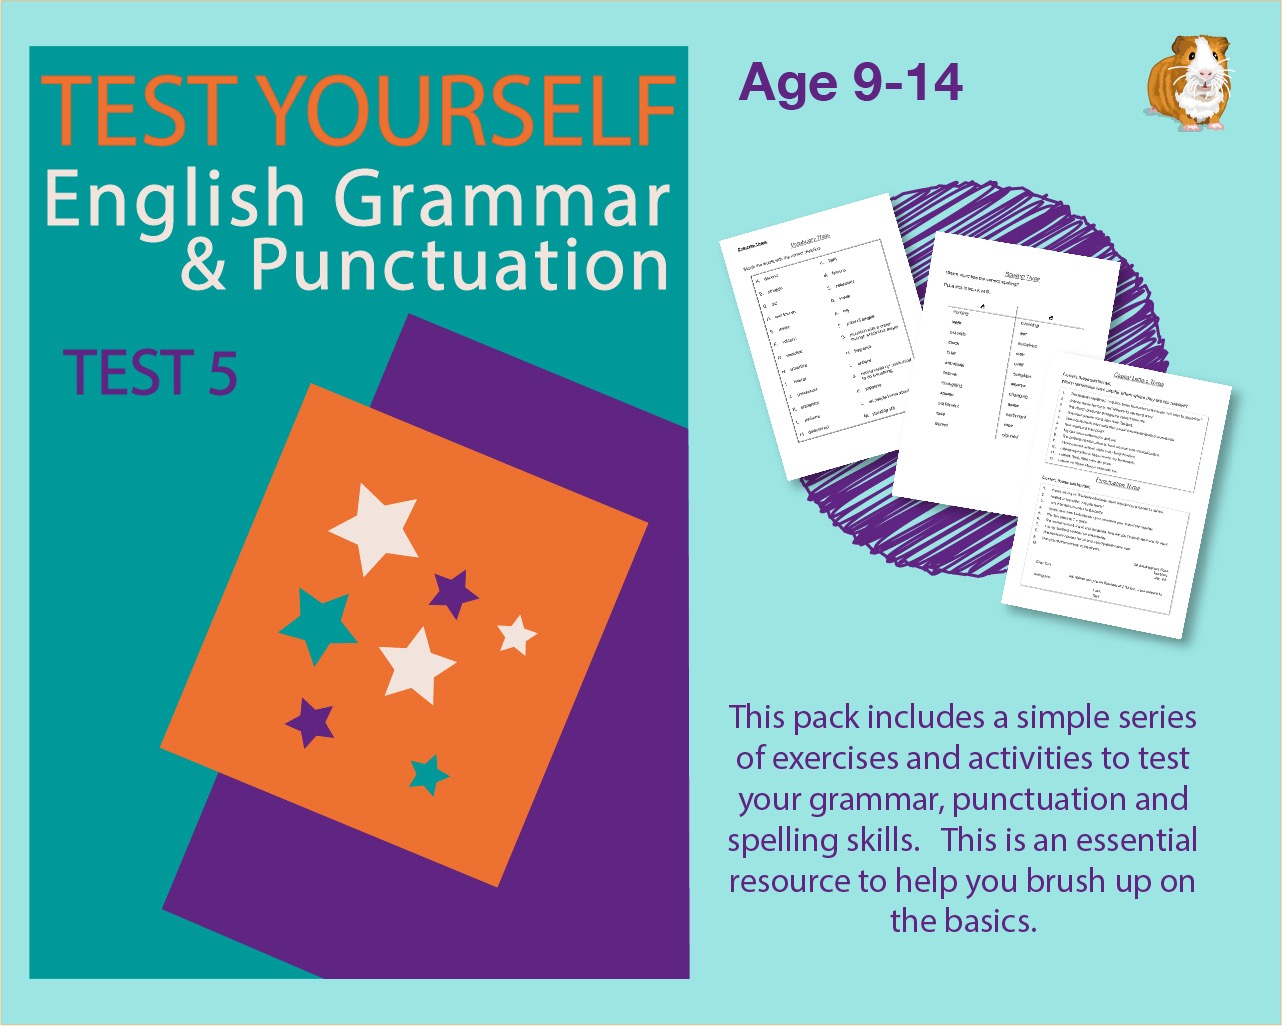 Assessment Test 5 (Test Your English Grammar And Punctuation Skills) 9-14 years